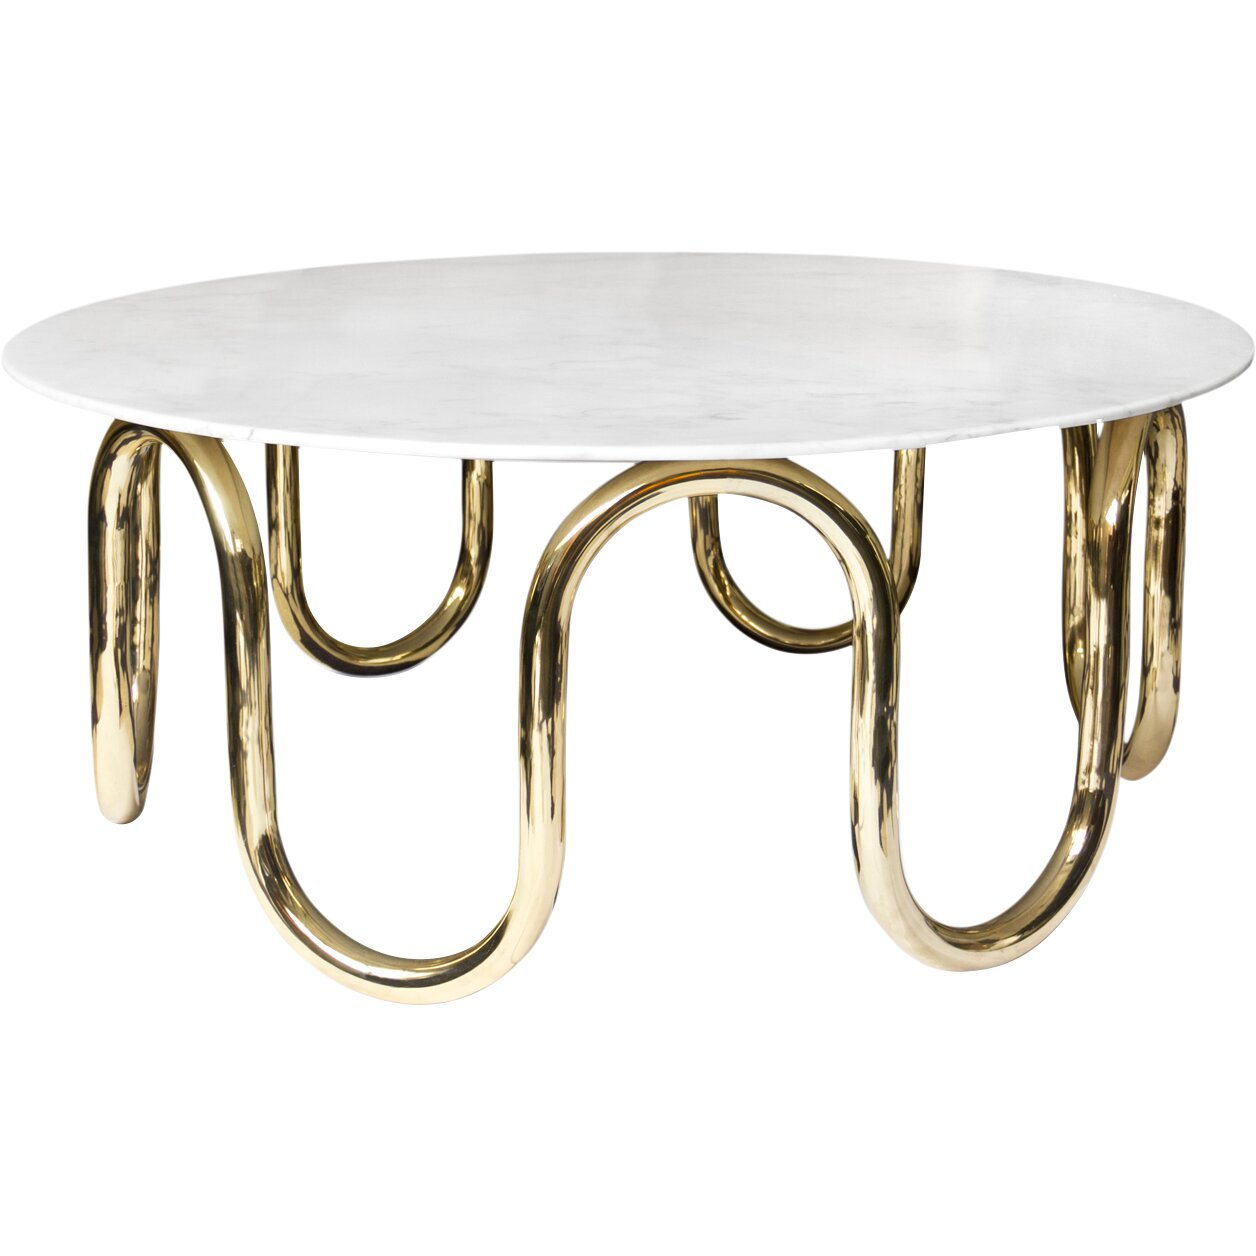 Jonathan Adler Scalinatella Coffee Table Reviews Wayfair